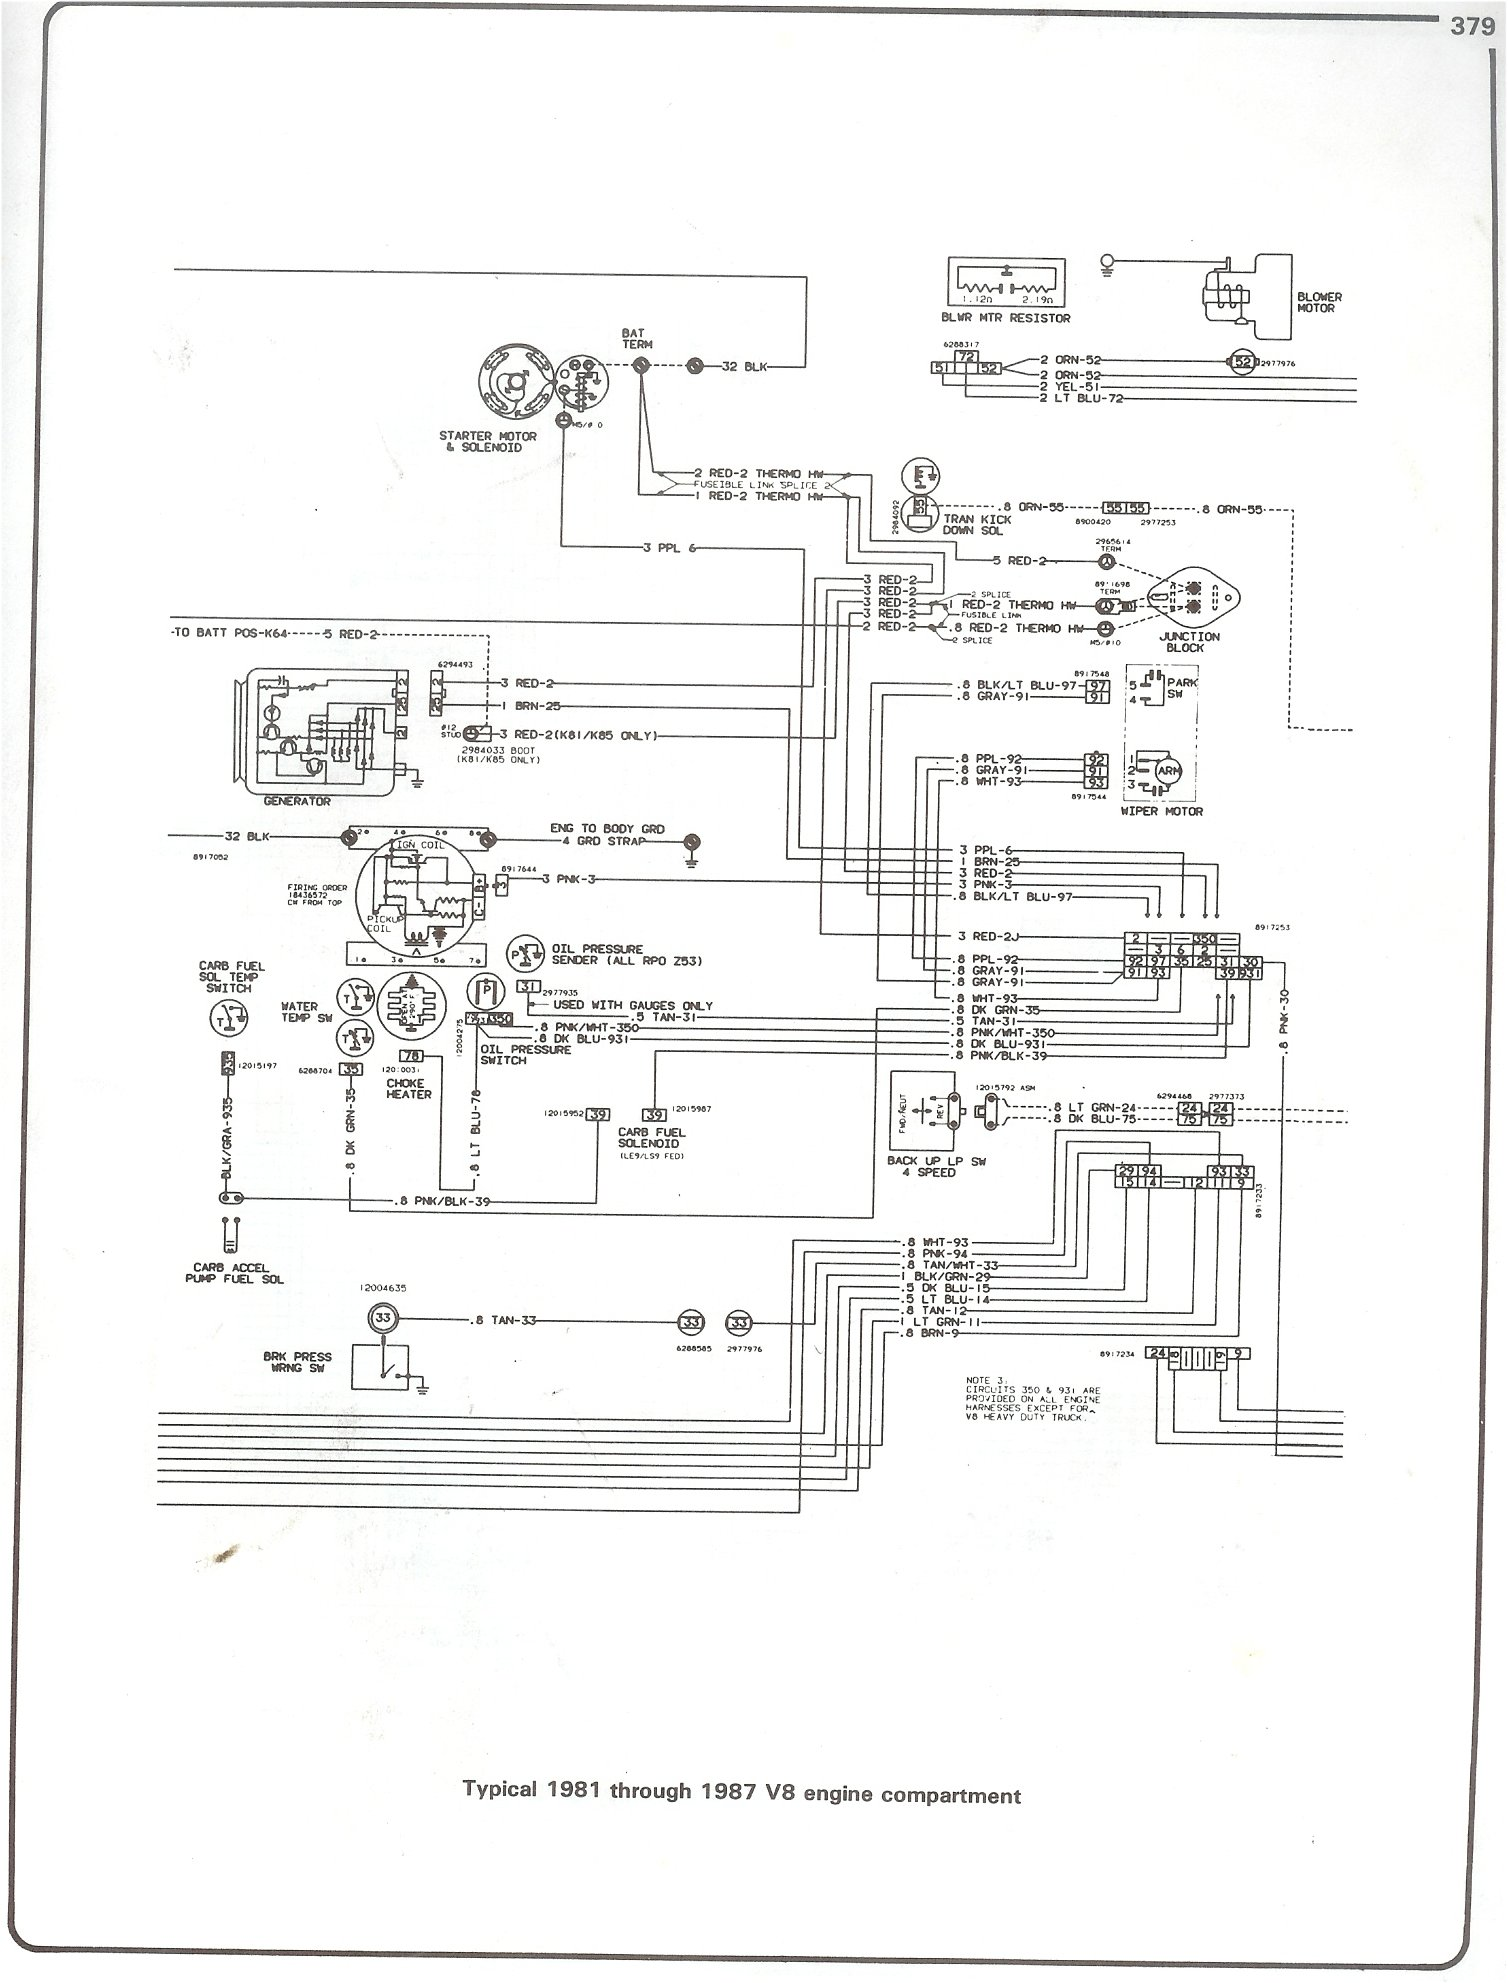 81 87_V8_engine complete 73 87 wiring diagrams chevy wiring schematics at mifinder.co